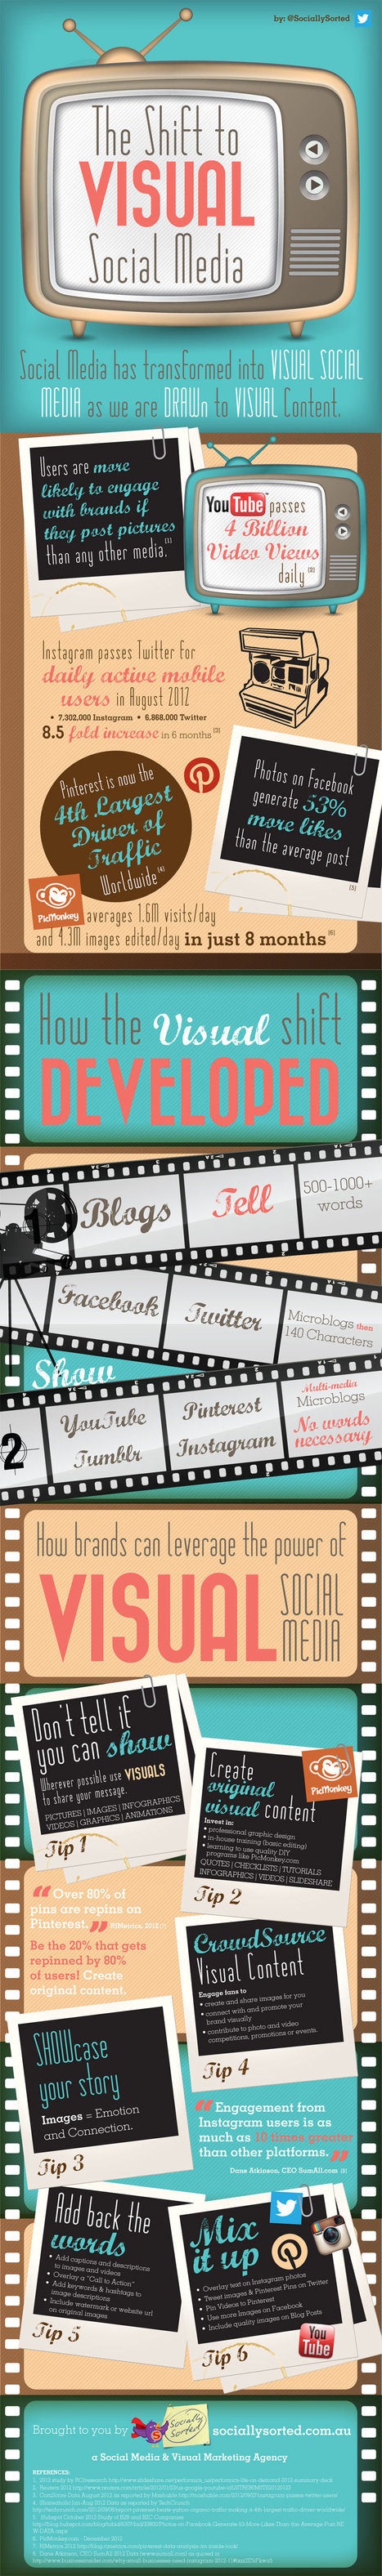 6 Tips for Being More Visual With Social Media (Infographic) | Cuppa | Scoop.it